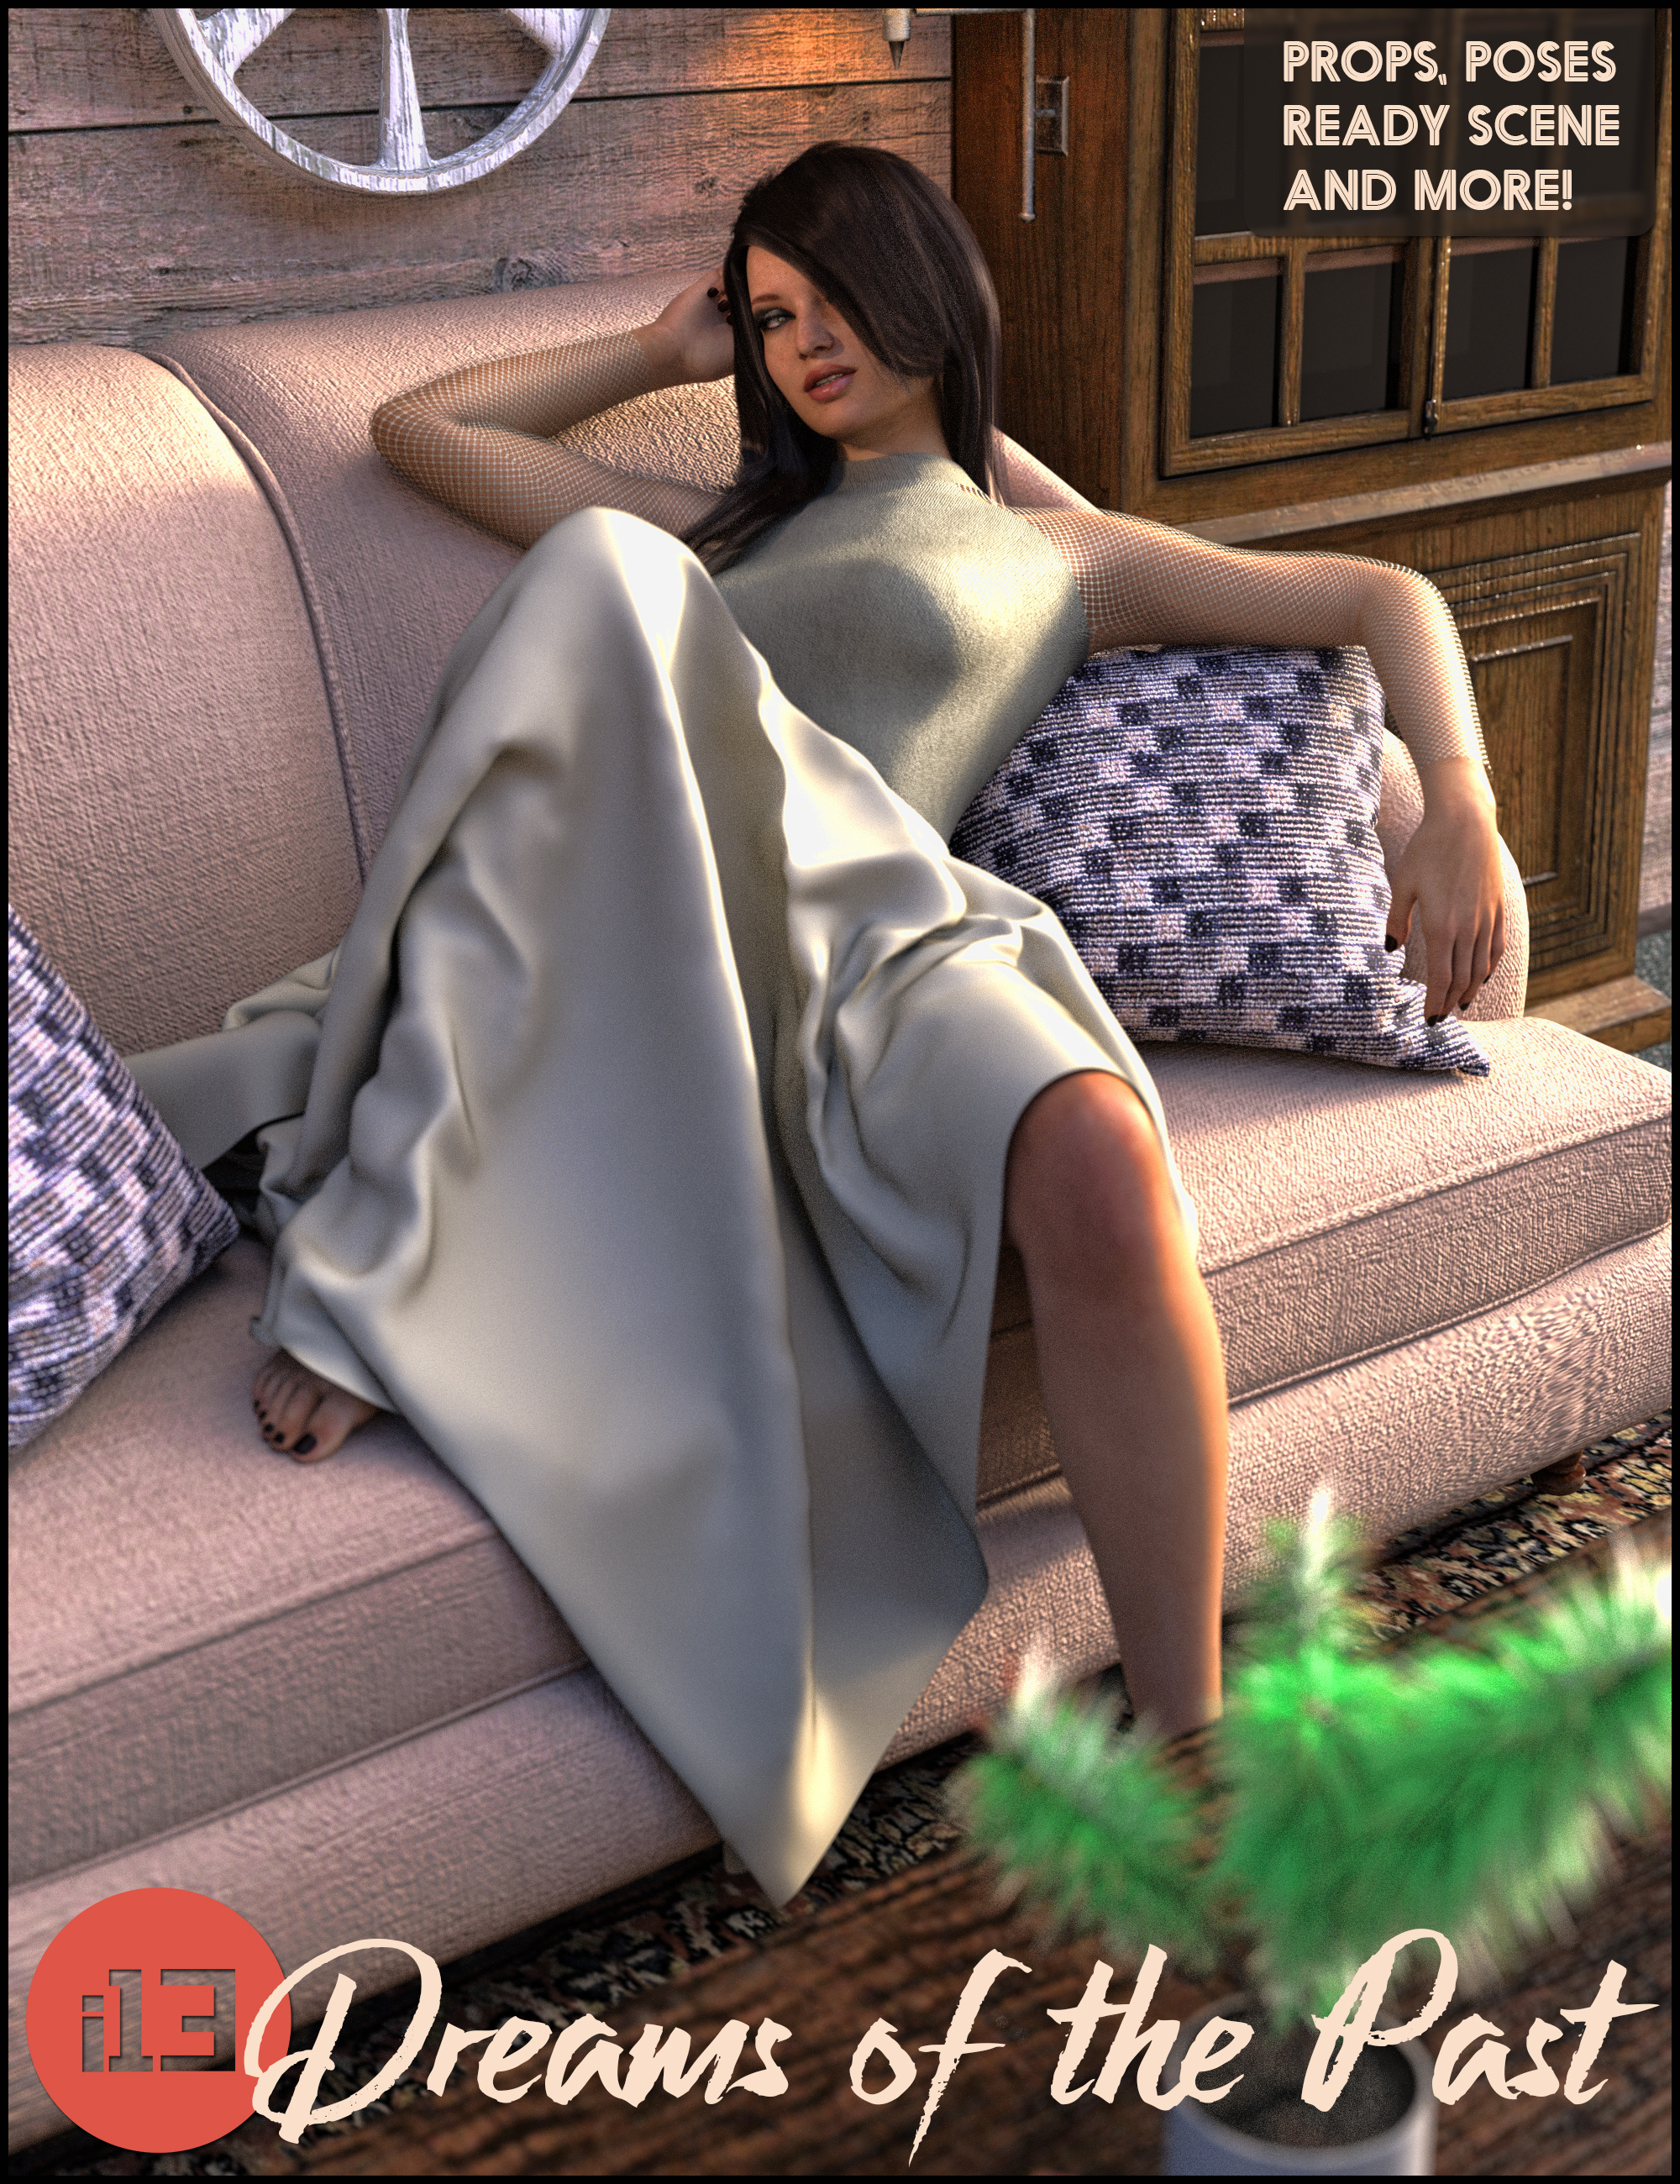 i13 Dreams of the Past by: ironman13, 3D Models by Daz 3D